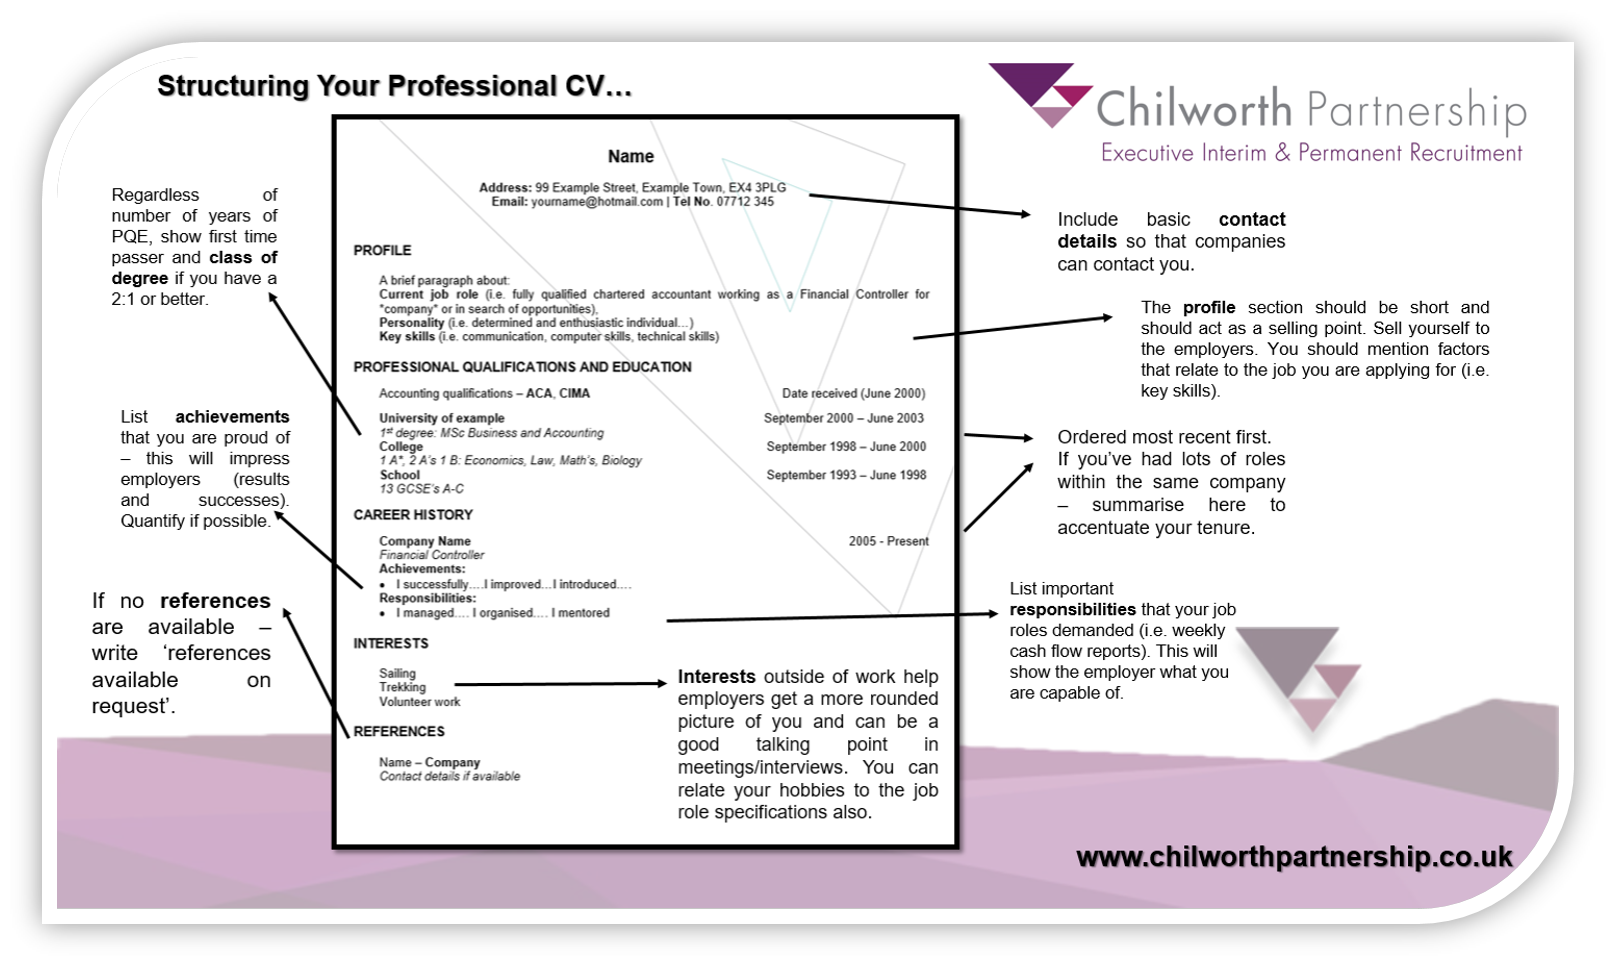 Structuring Your Professional CV